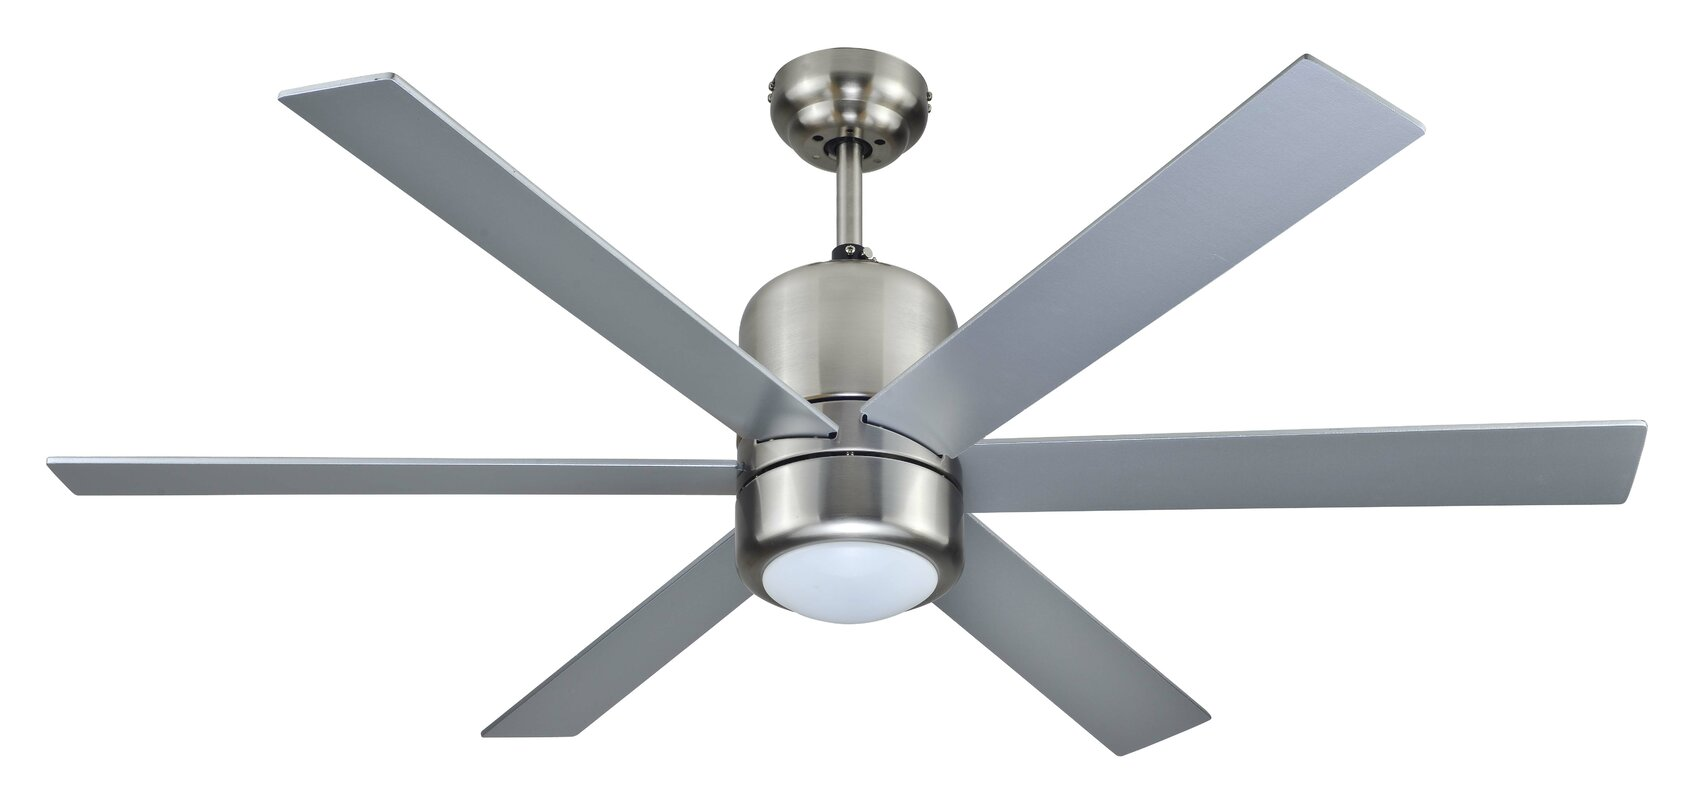 Jcpenney 6 Blade Ceiling Fan Full You